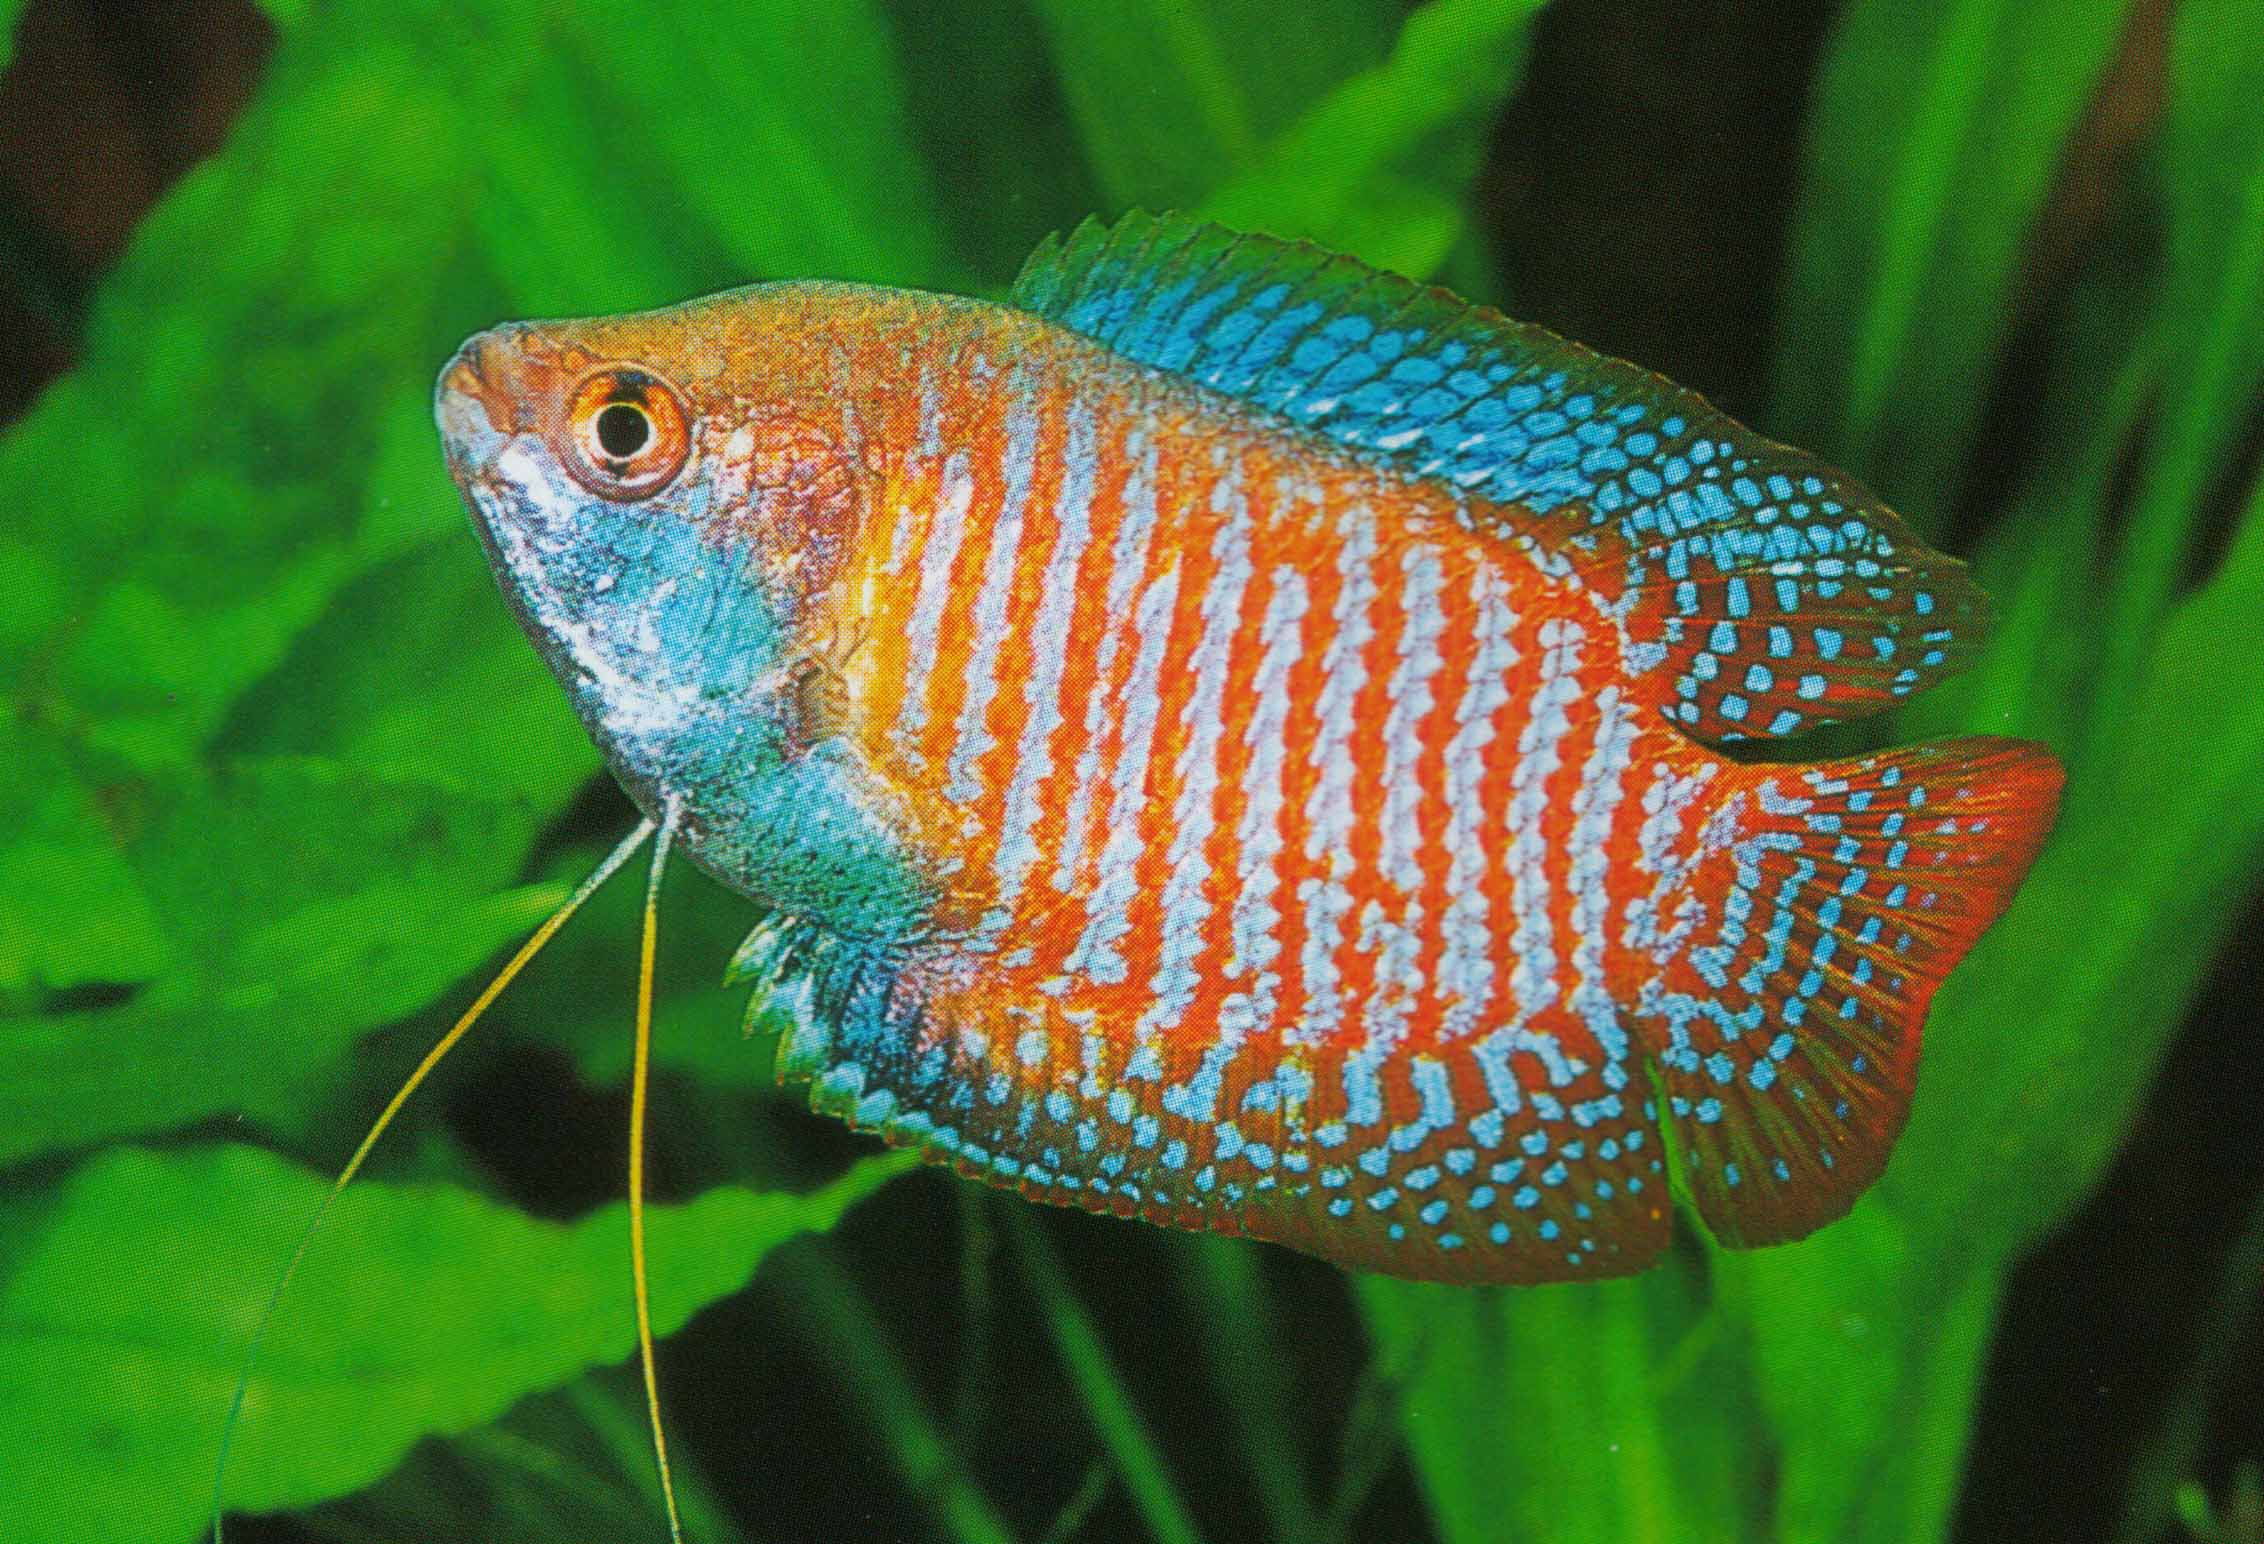 Dwarf Gourami in a home aquarium.